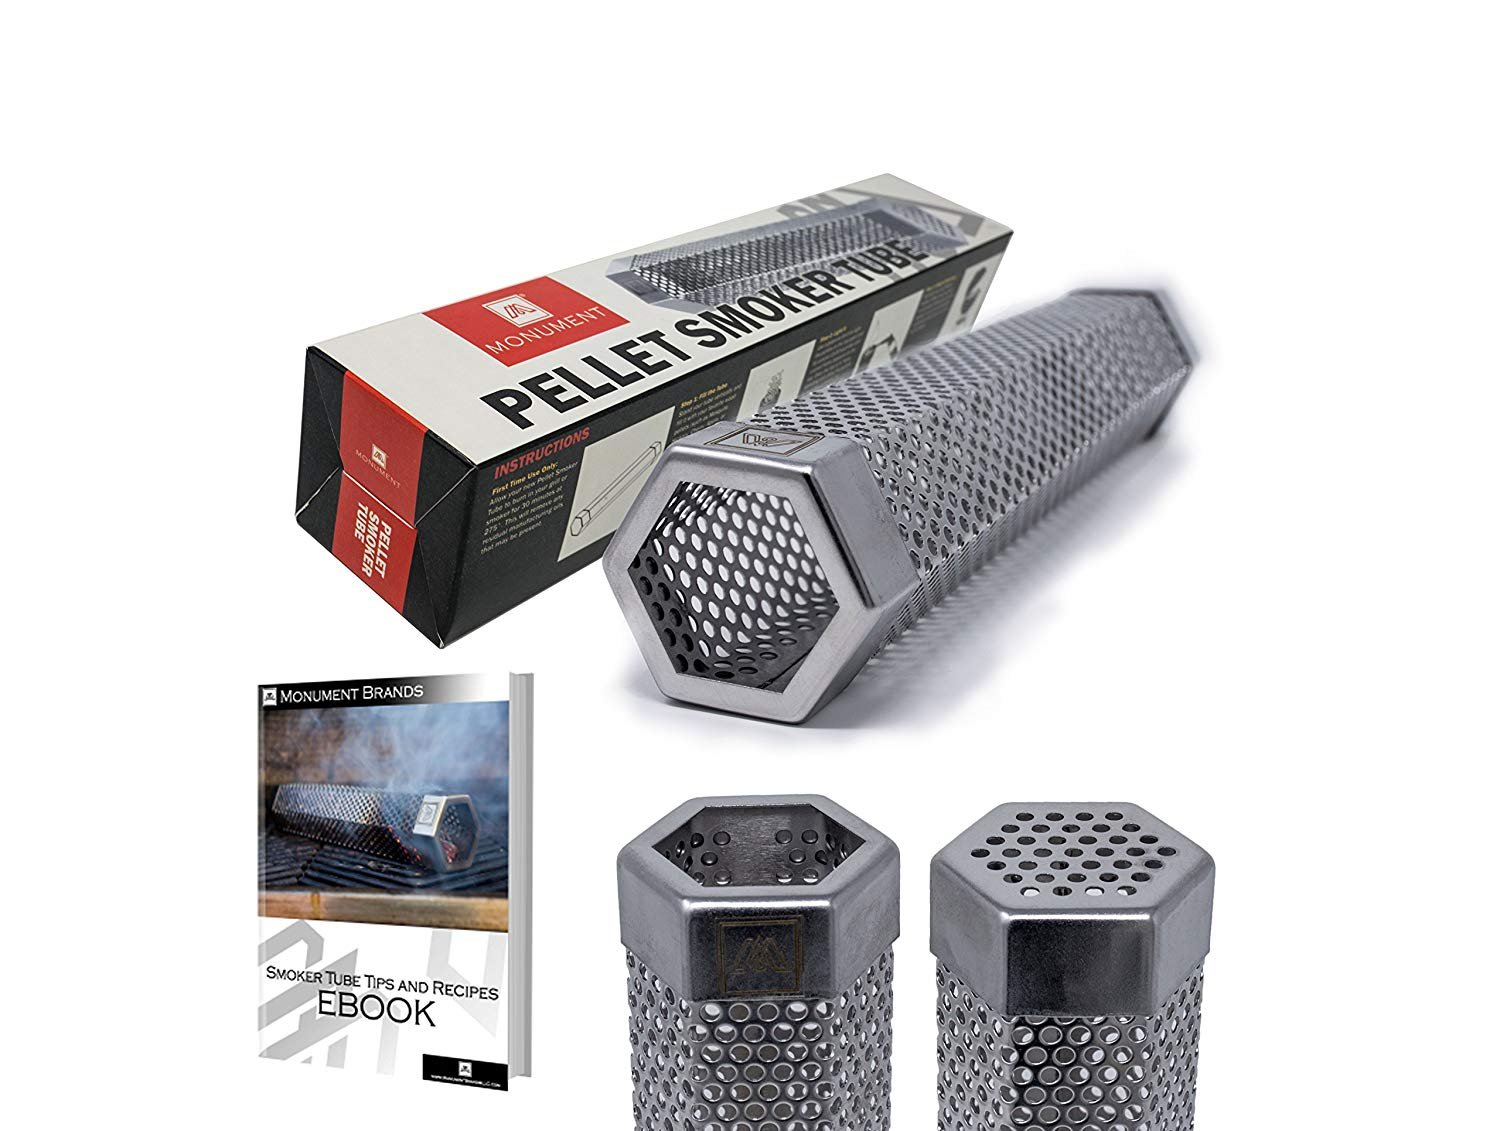 M Embr Smoking 12'' Pellet Smoker Tube | Up to 5 Hours of Smoking | Use on Any Grill or Smoker | Hot Smoking & Cold Smoking | E-Book with Recipes is Included